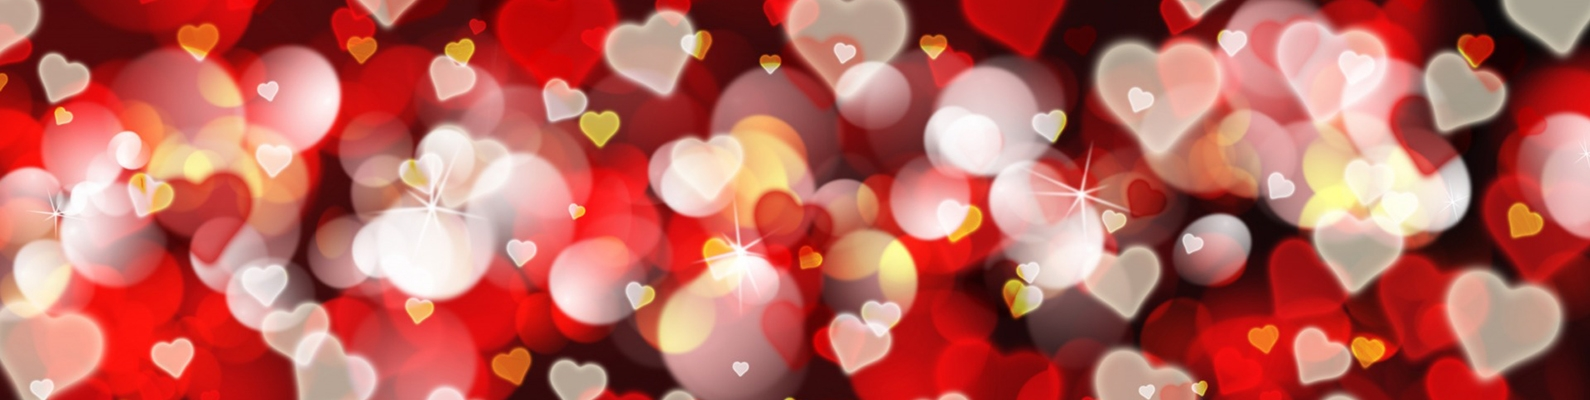 bokeh, background, love, romantic, сердечки, hearts, Valentine's Day, red